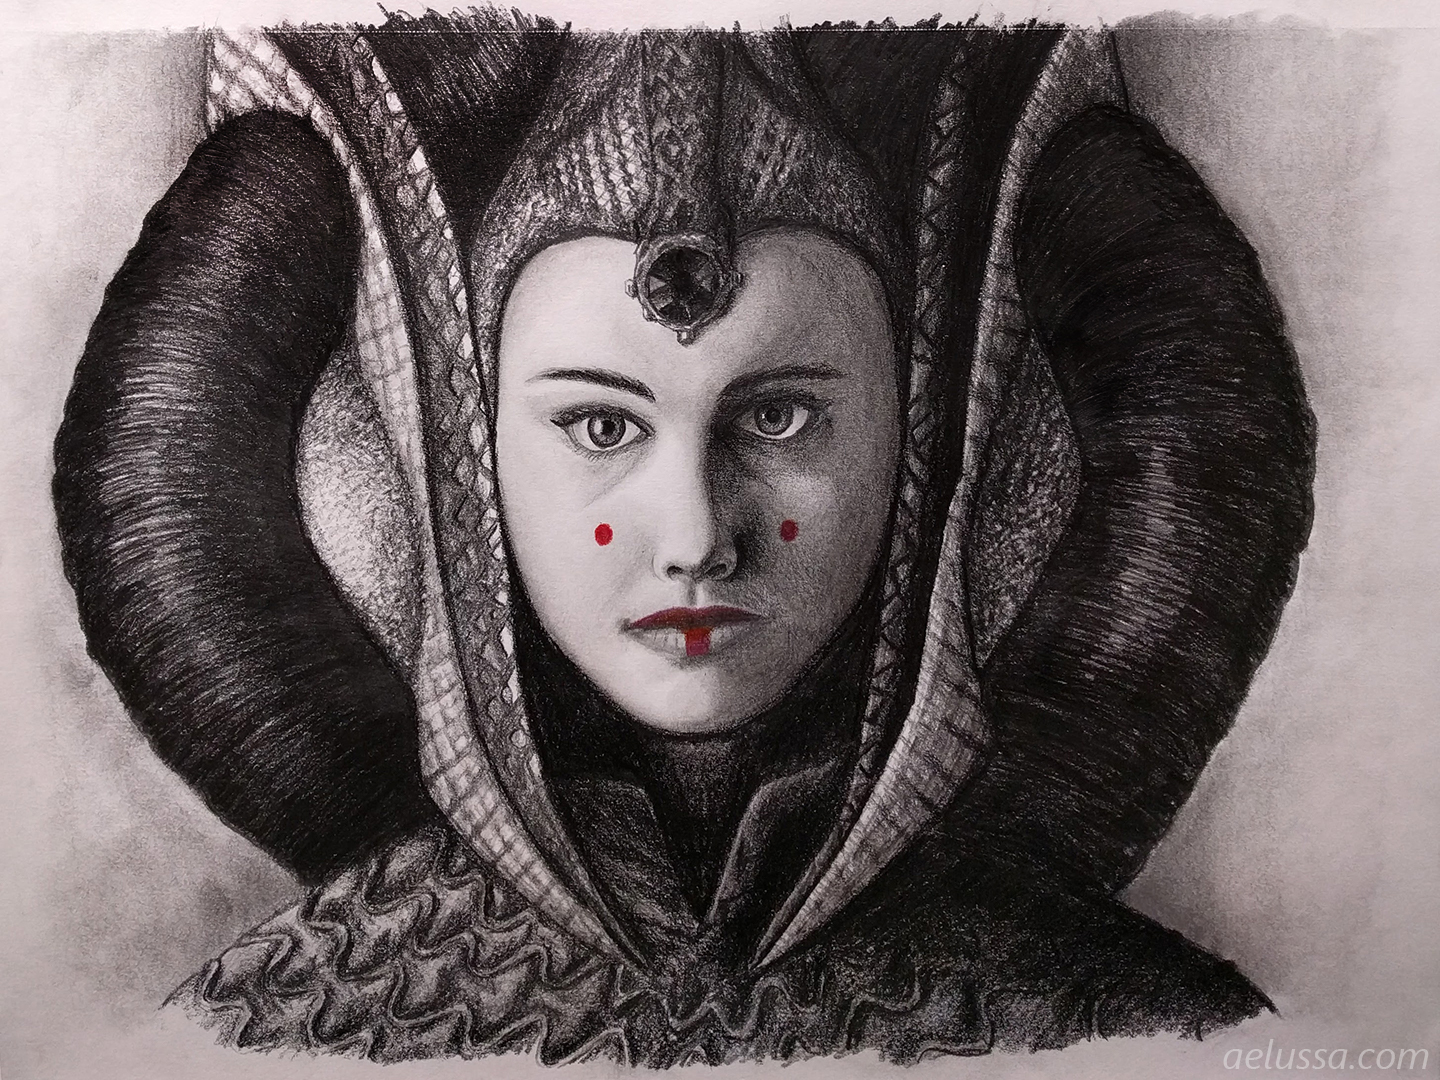 Queen padme amidala pencil drawing aelussas creative space